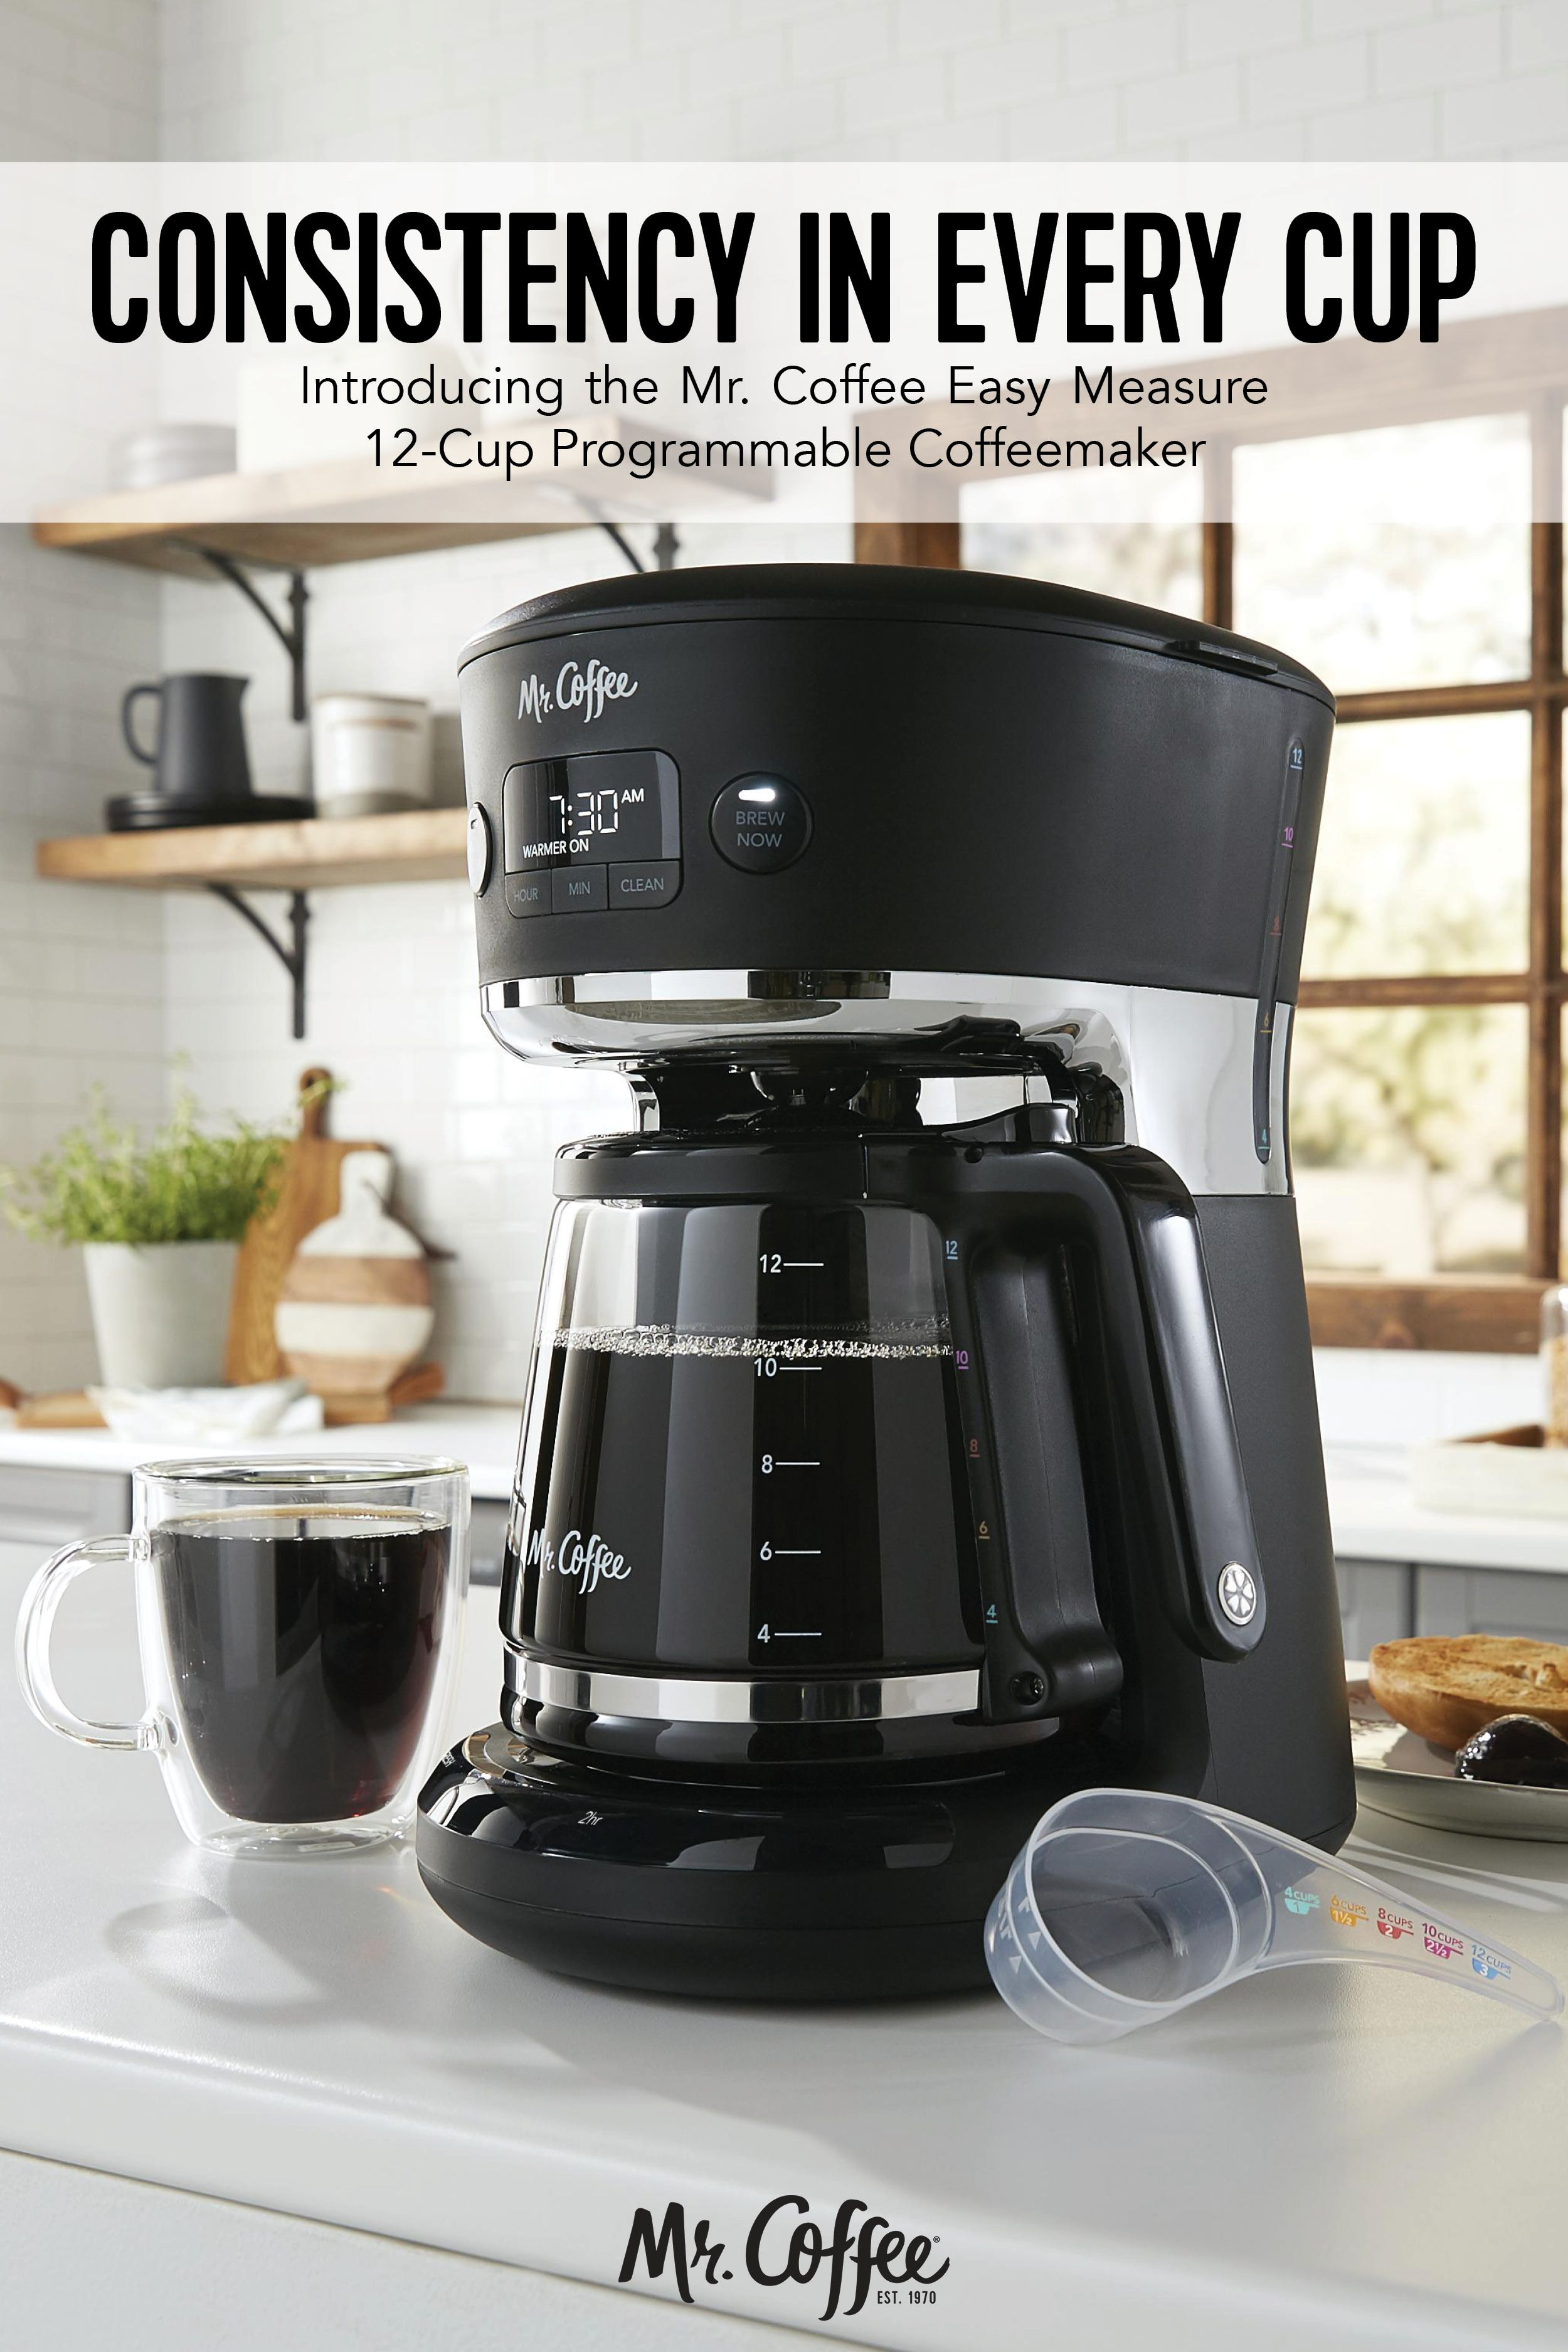 Mr Coffee Easy Measure 12 Cup Programmable Coffee Maker Black In 2020 Camping Coffee Maker Coffee Maker Best Coffee Maker